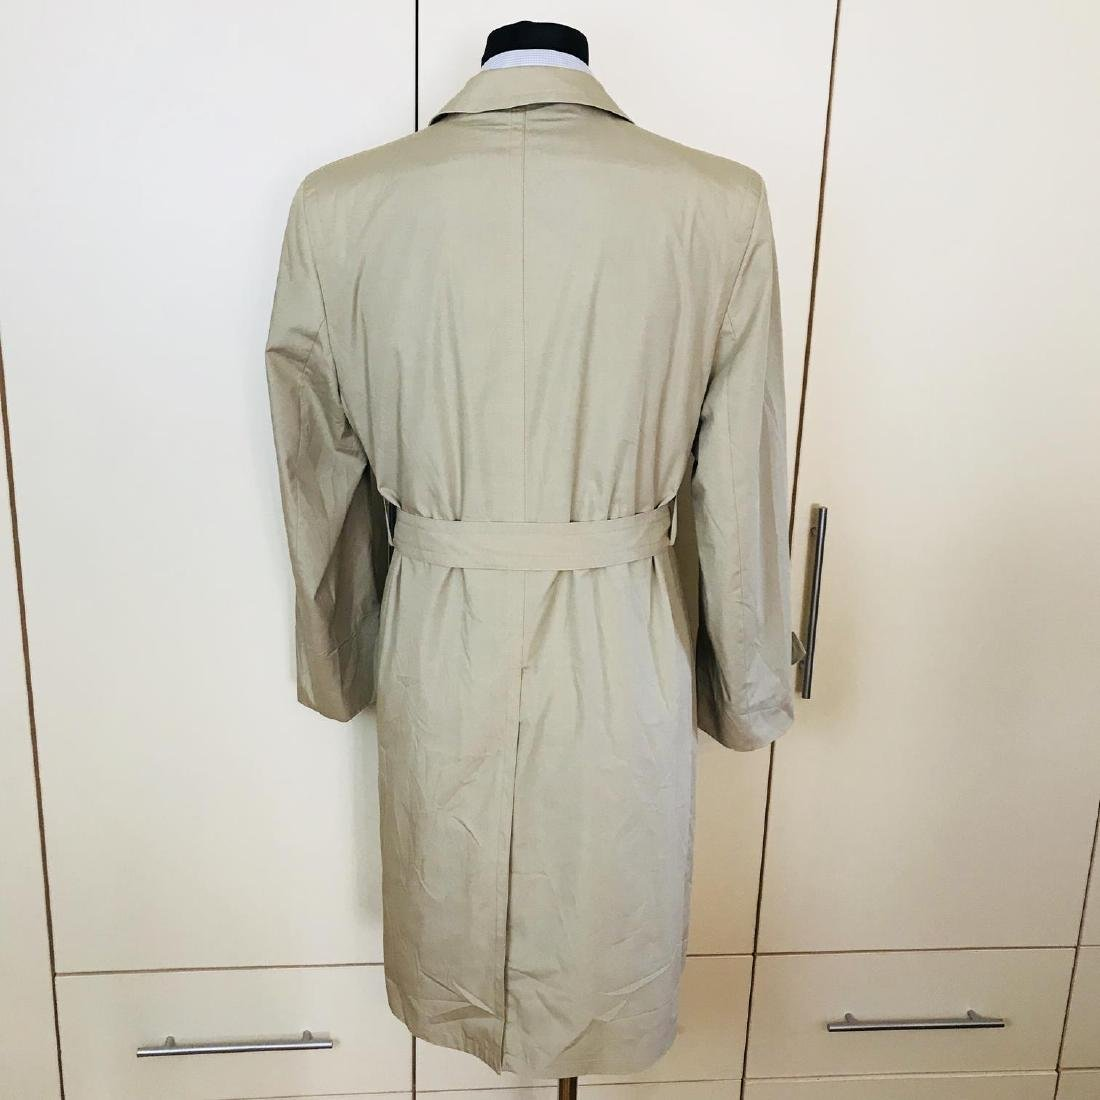 Vintage Men's Beige Trench Coat Size US 40 / EUR 50 - 5